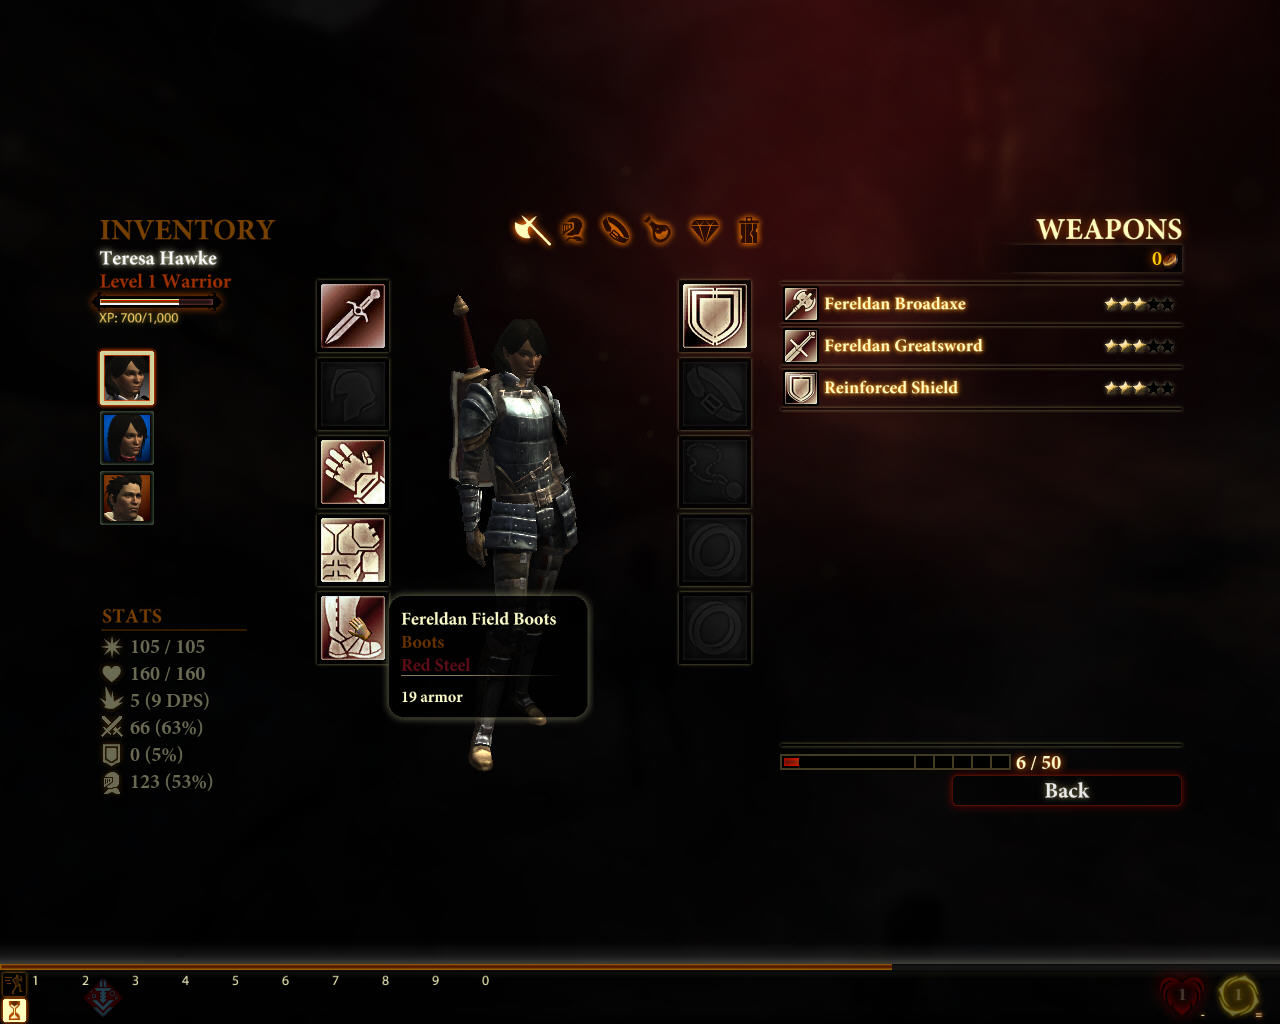 Dragon Age II Windows Inventory screen